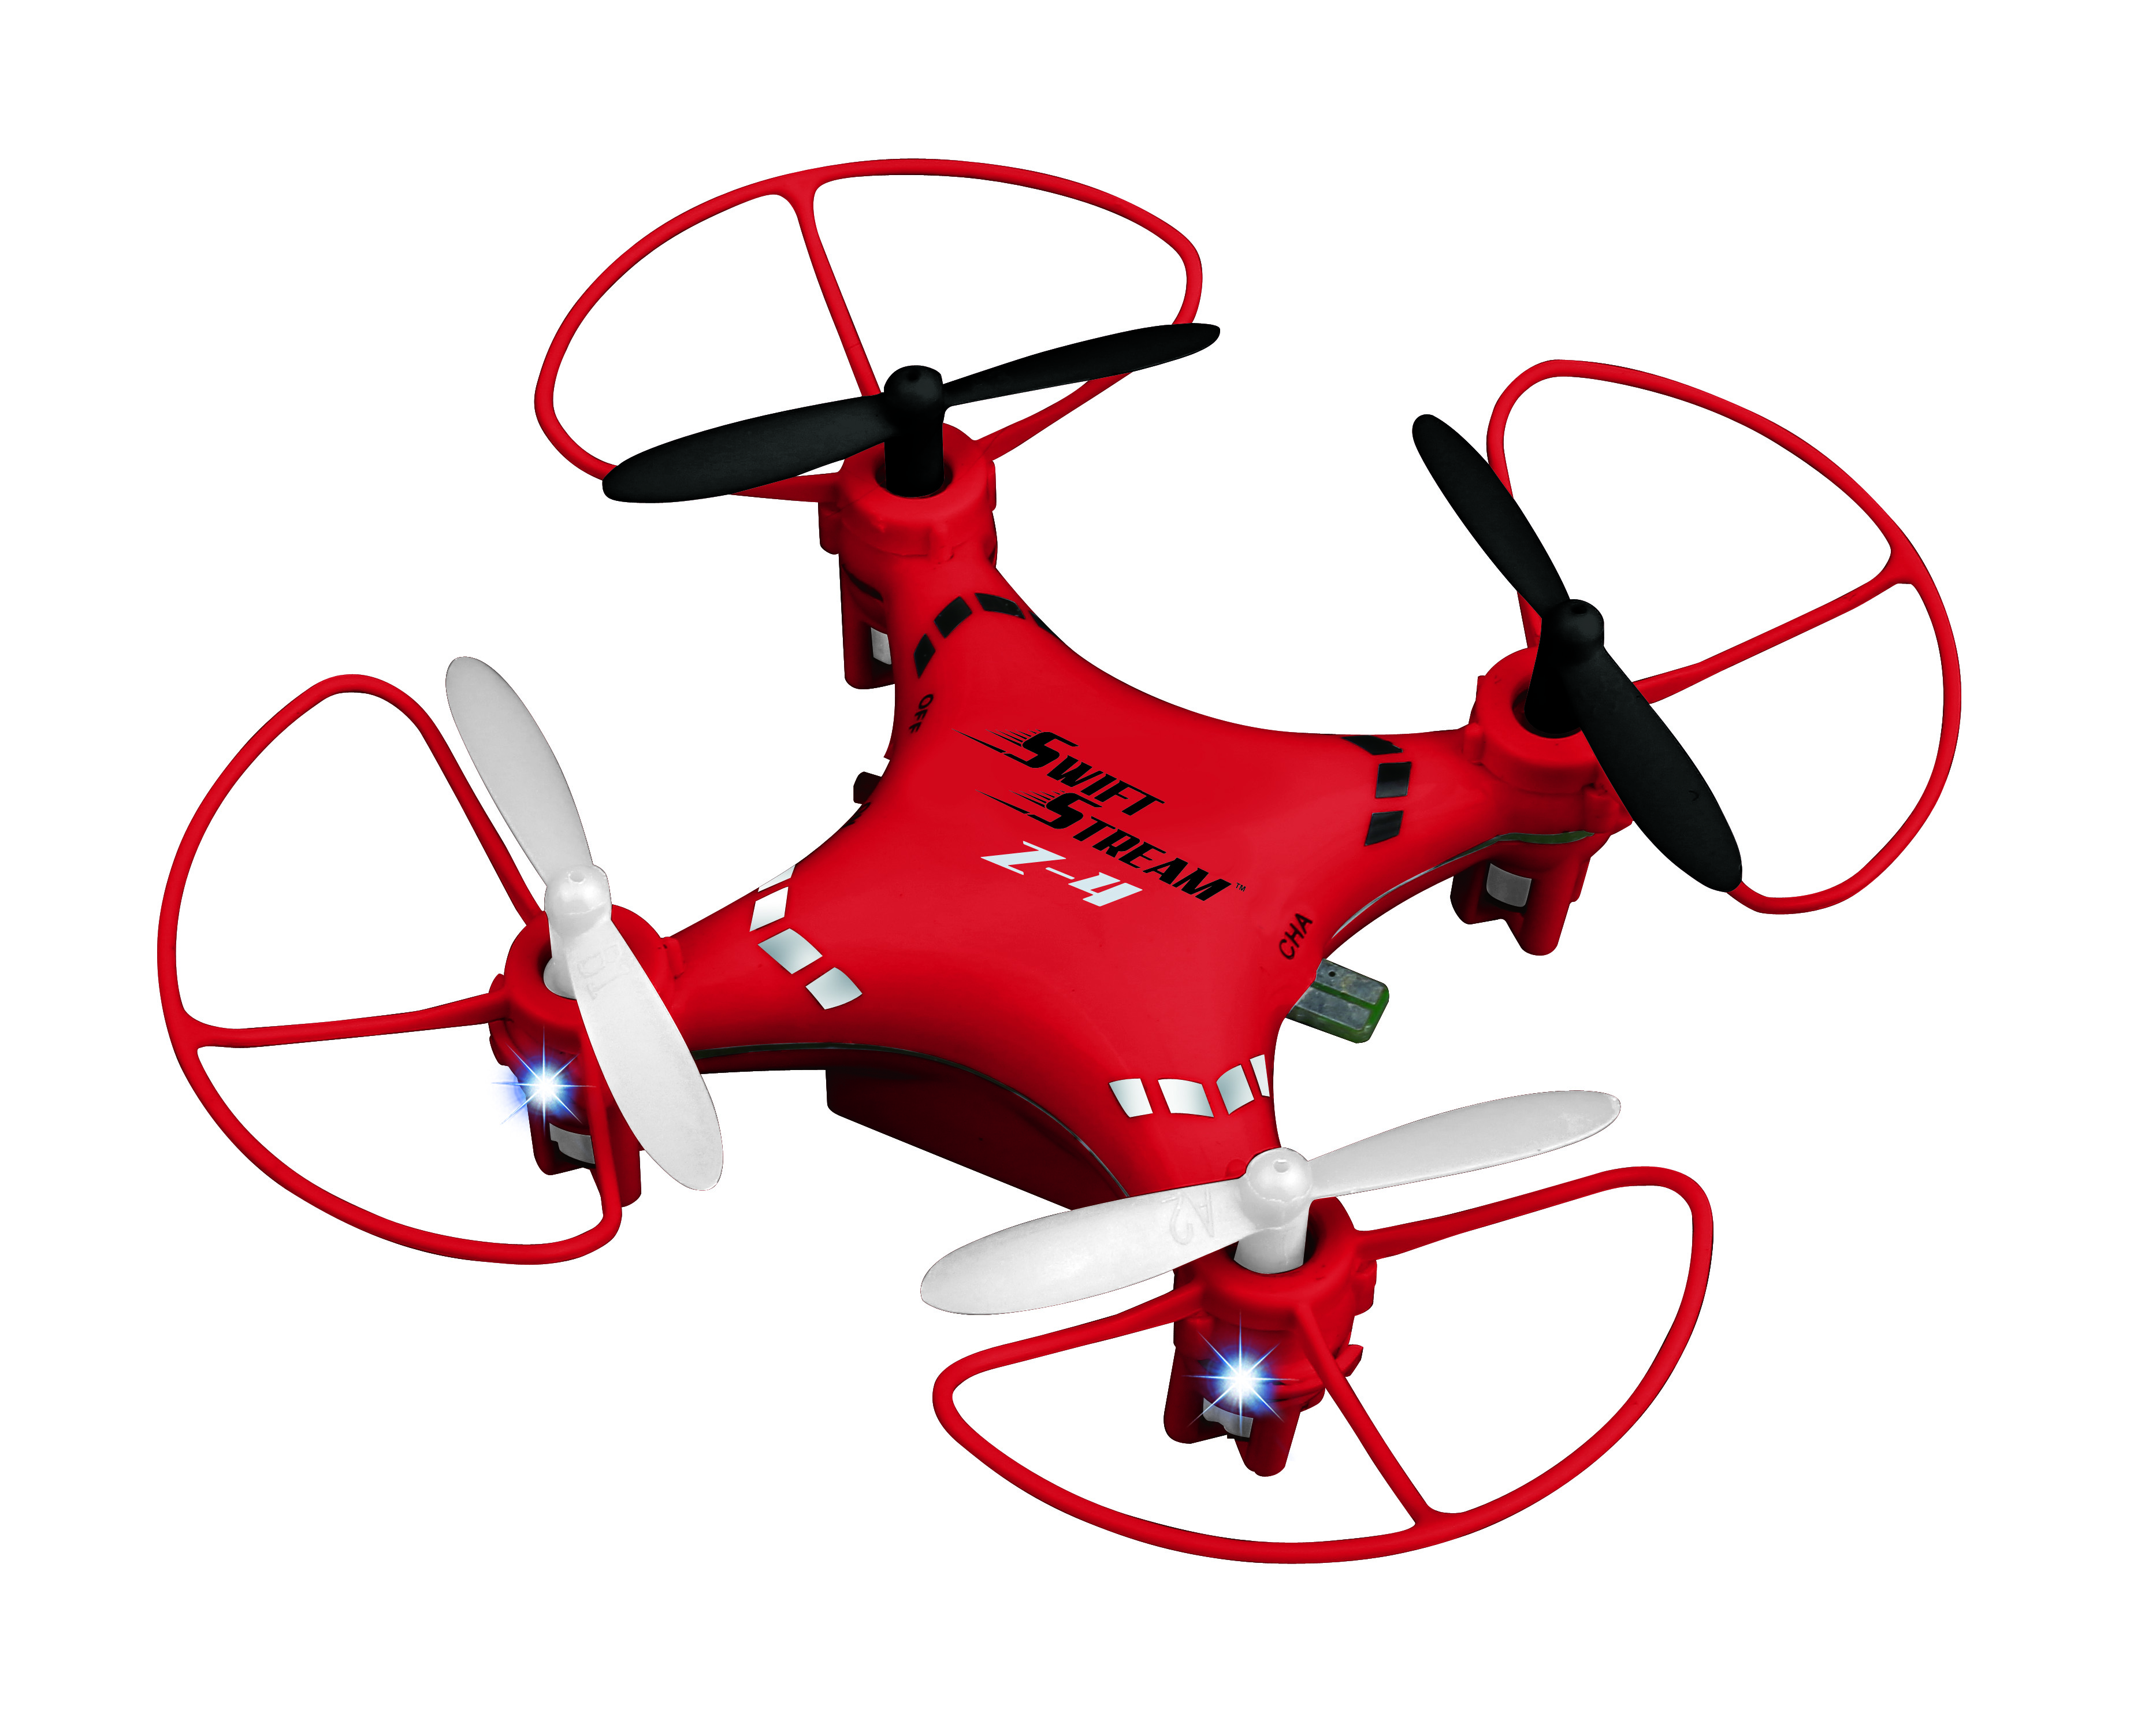 remote airplanes for kids with Z 4 Mini Drone on Generation Gap Funny Quotes in addition 12376455 moreover Creative Problem Solving Quotes likewise Done Playing Games Quotes together with Missing A Dead Friend Quotes.